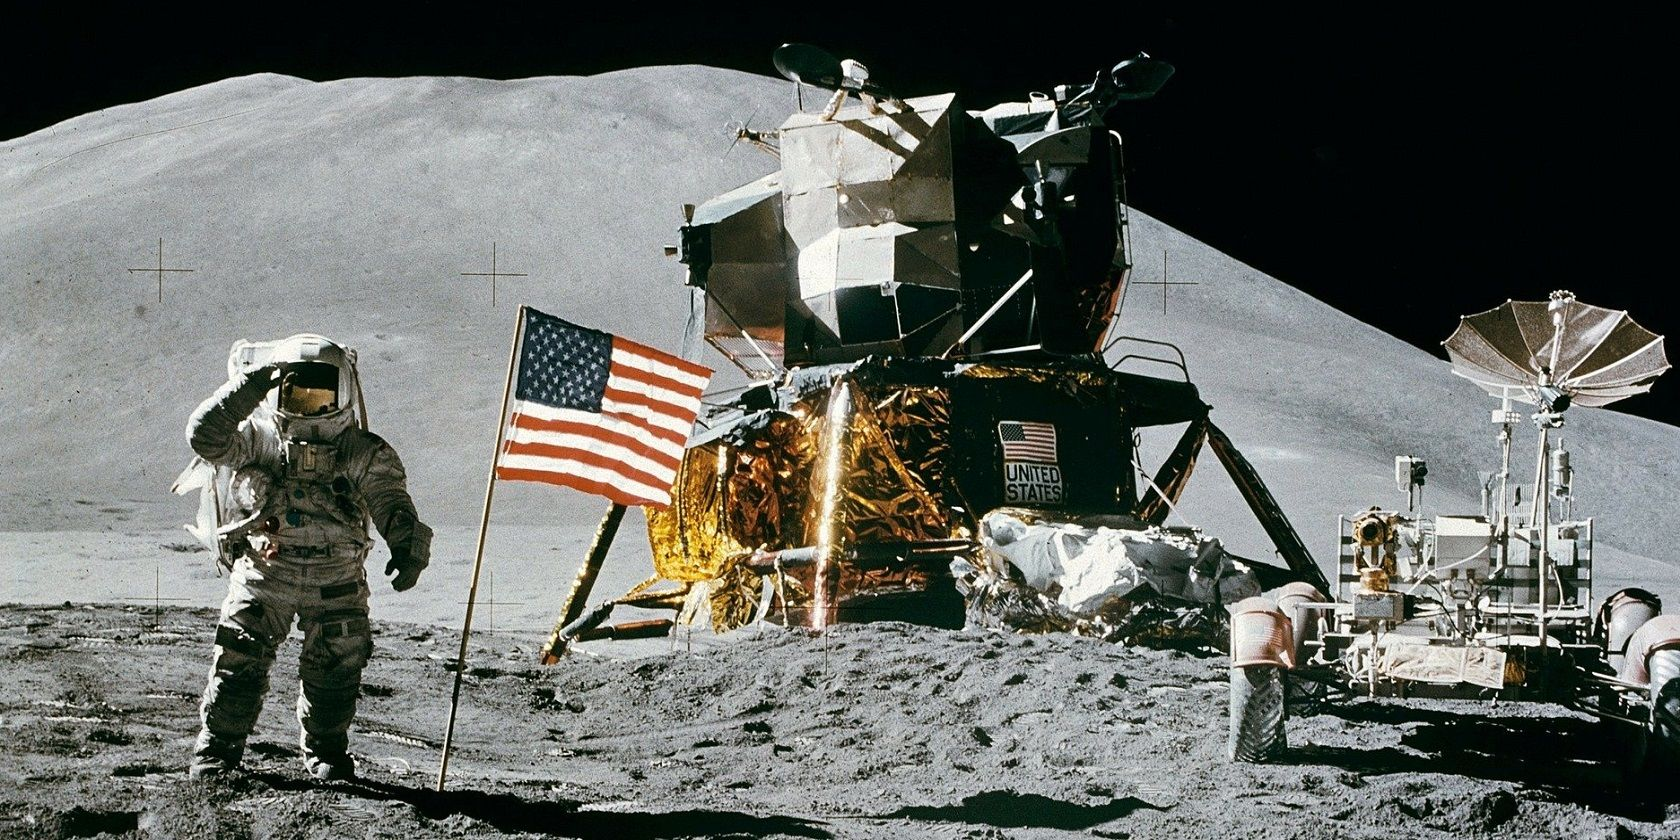 The Amazing Technology That Took Us to the Moon in the 1960s